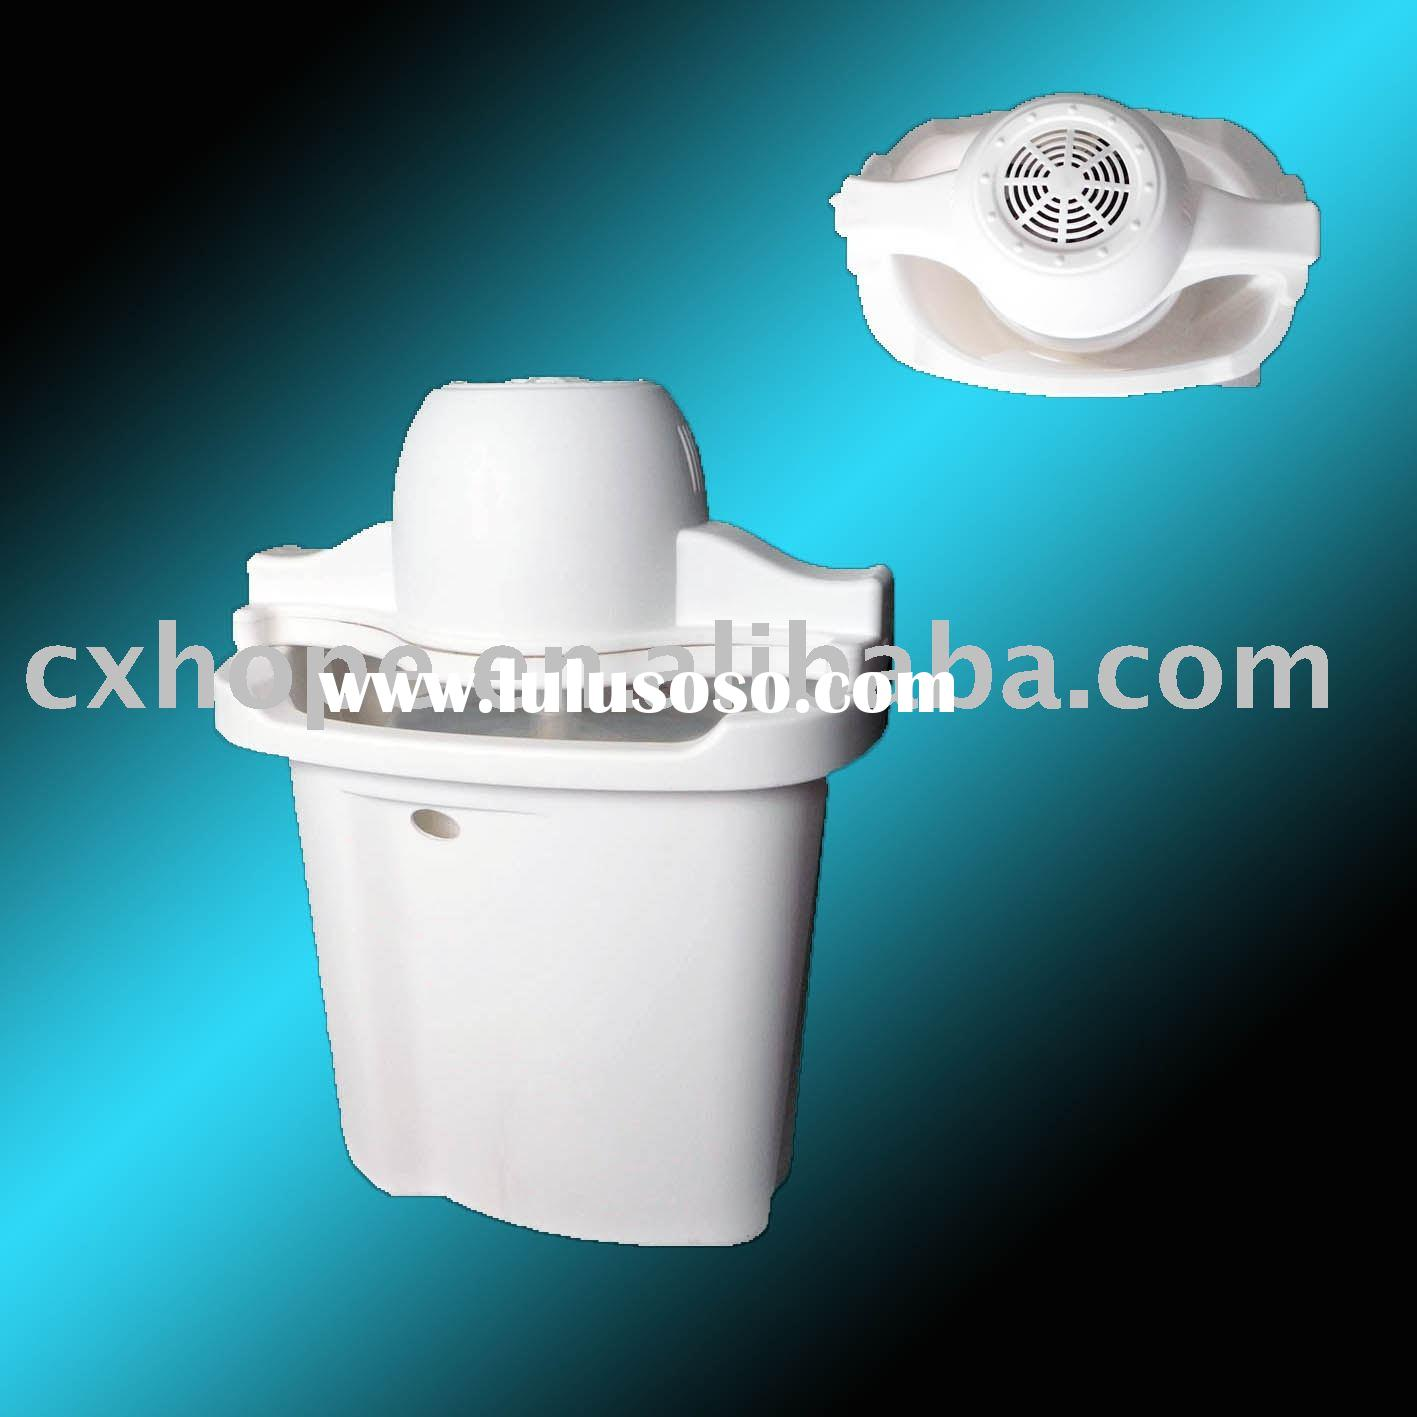 Plastic Ice Cream Maker(Plastic bucket ice cream machine, 4qt ice cream maker)